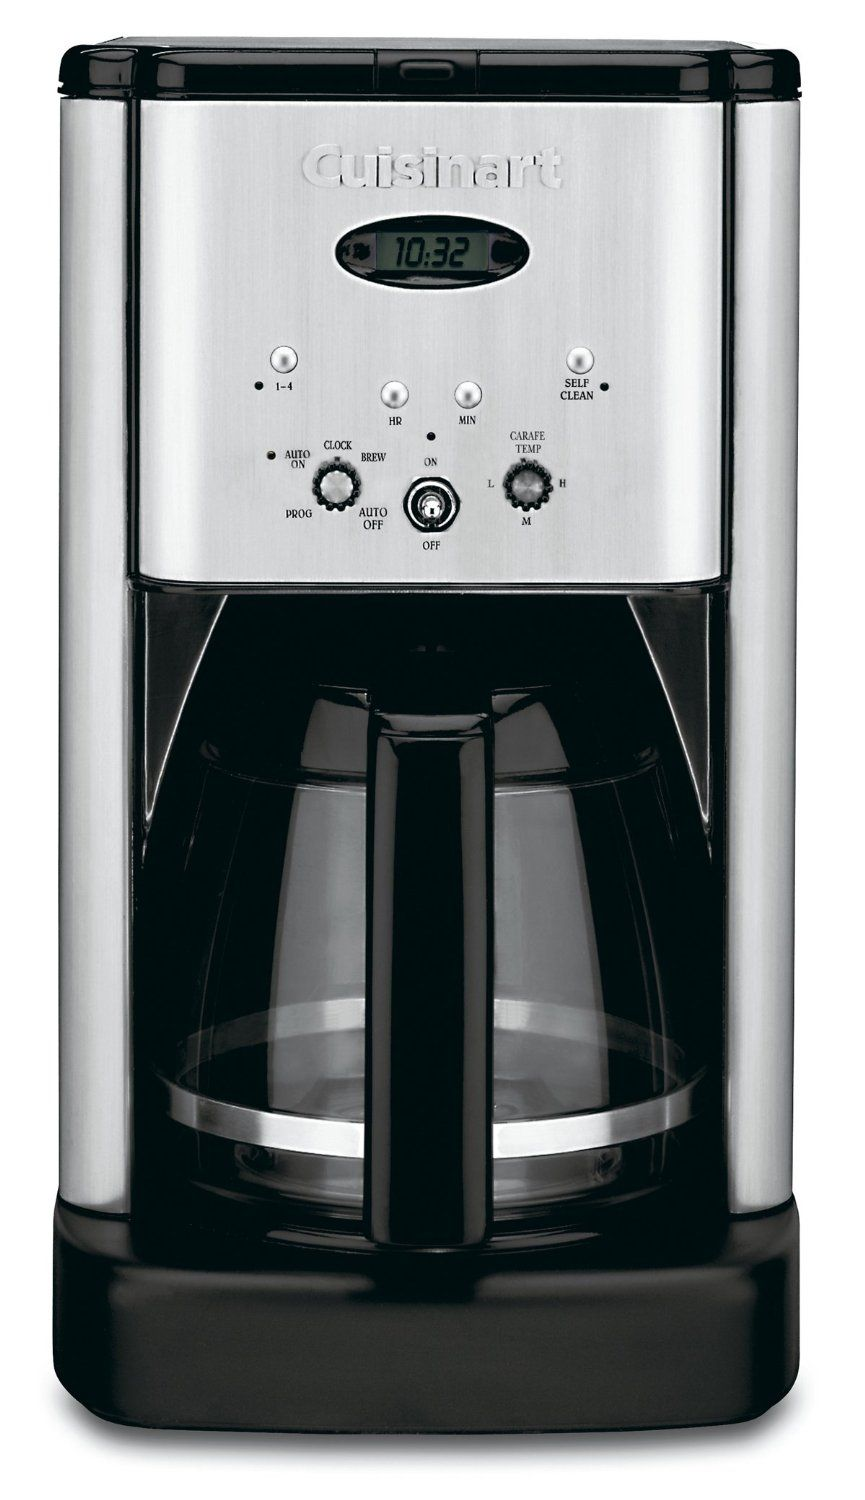 Best Coffee Makers Comparison 2015 | CrowdBest.com • Cuisinart DCC-1200 Brew Central 12-Cup Programmable Coffeemaker, Black/Brushed Metal #coffee